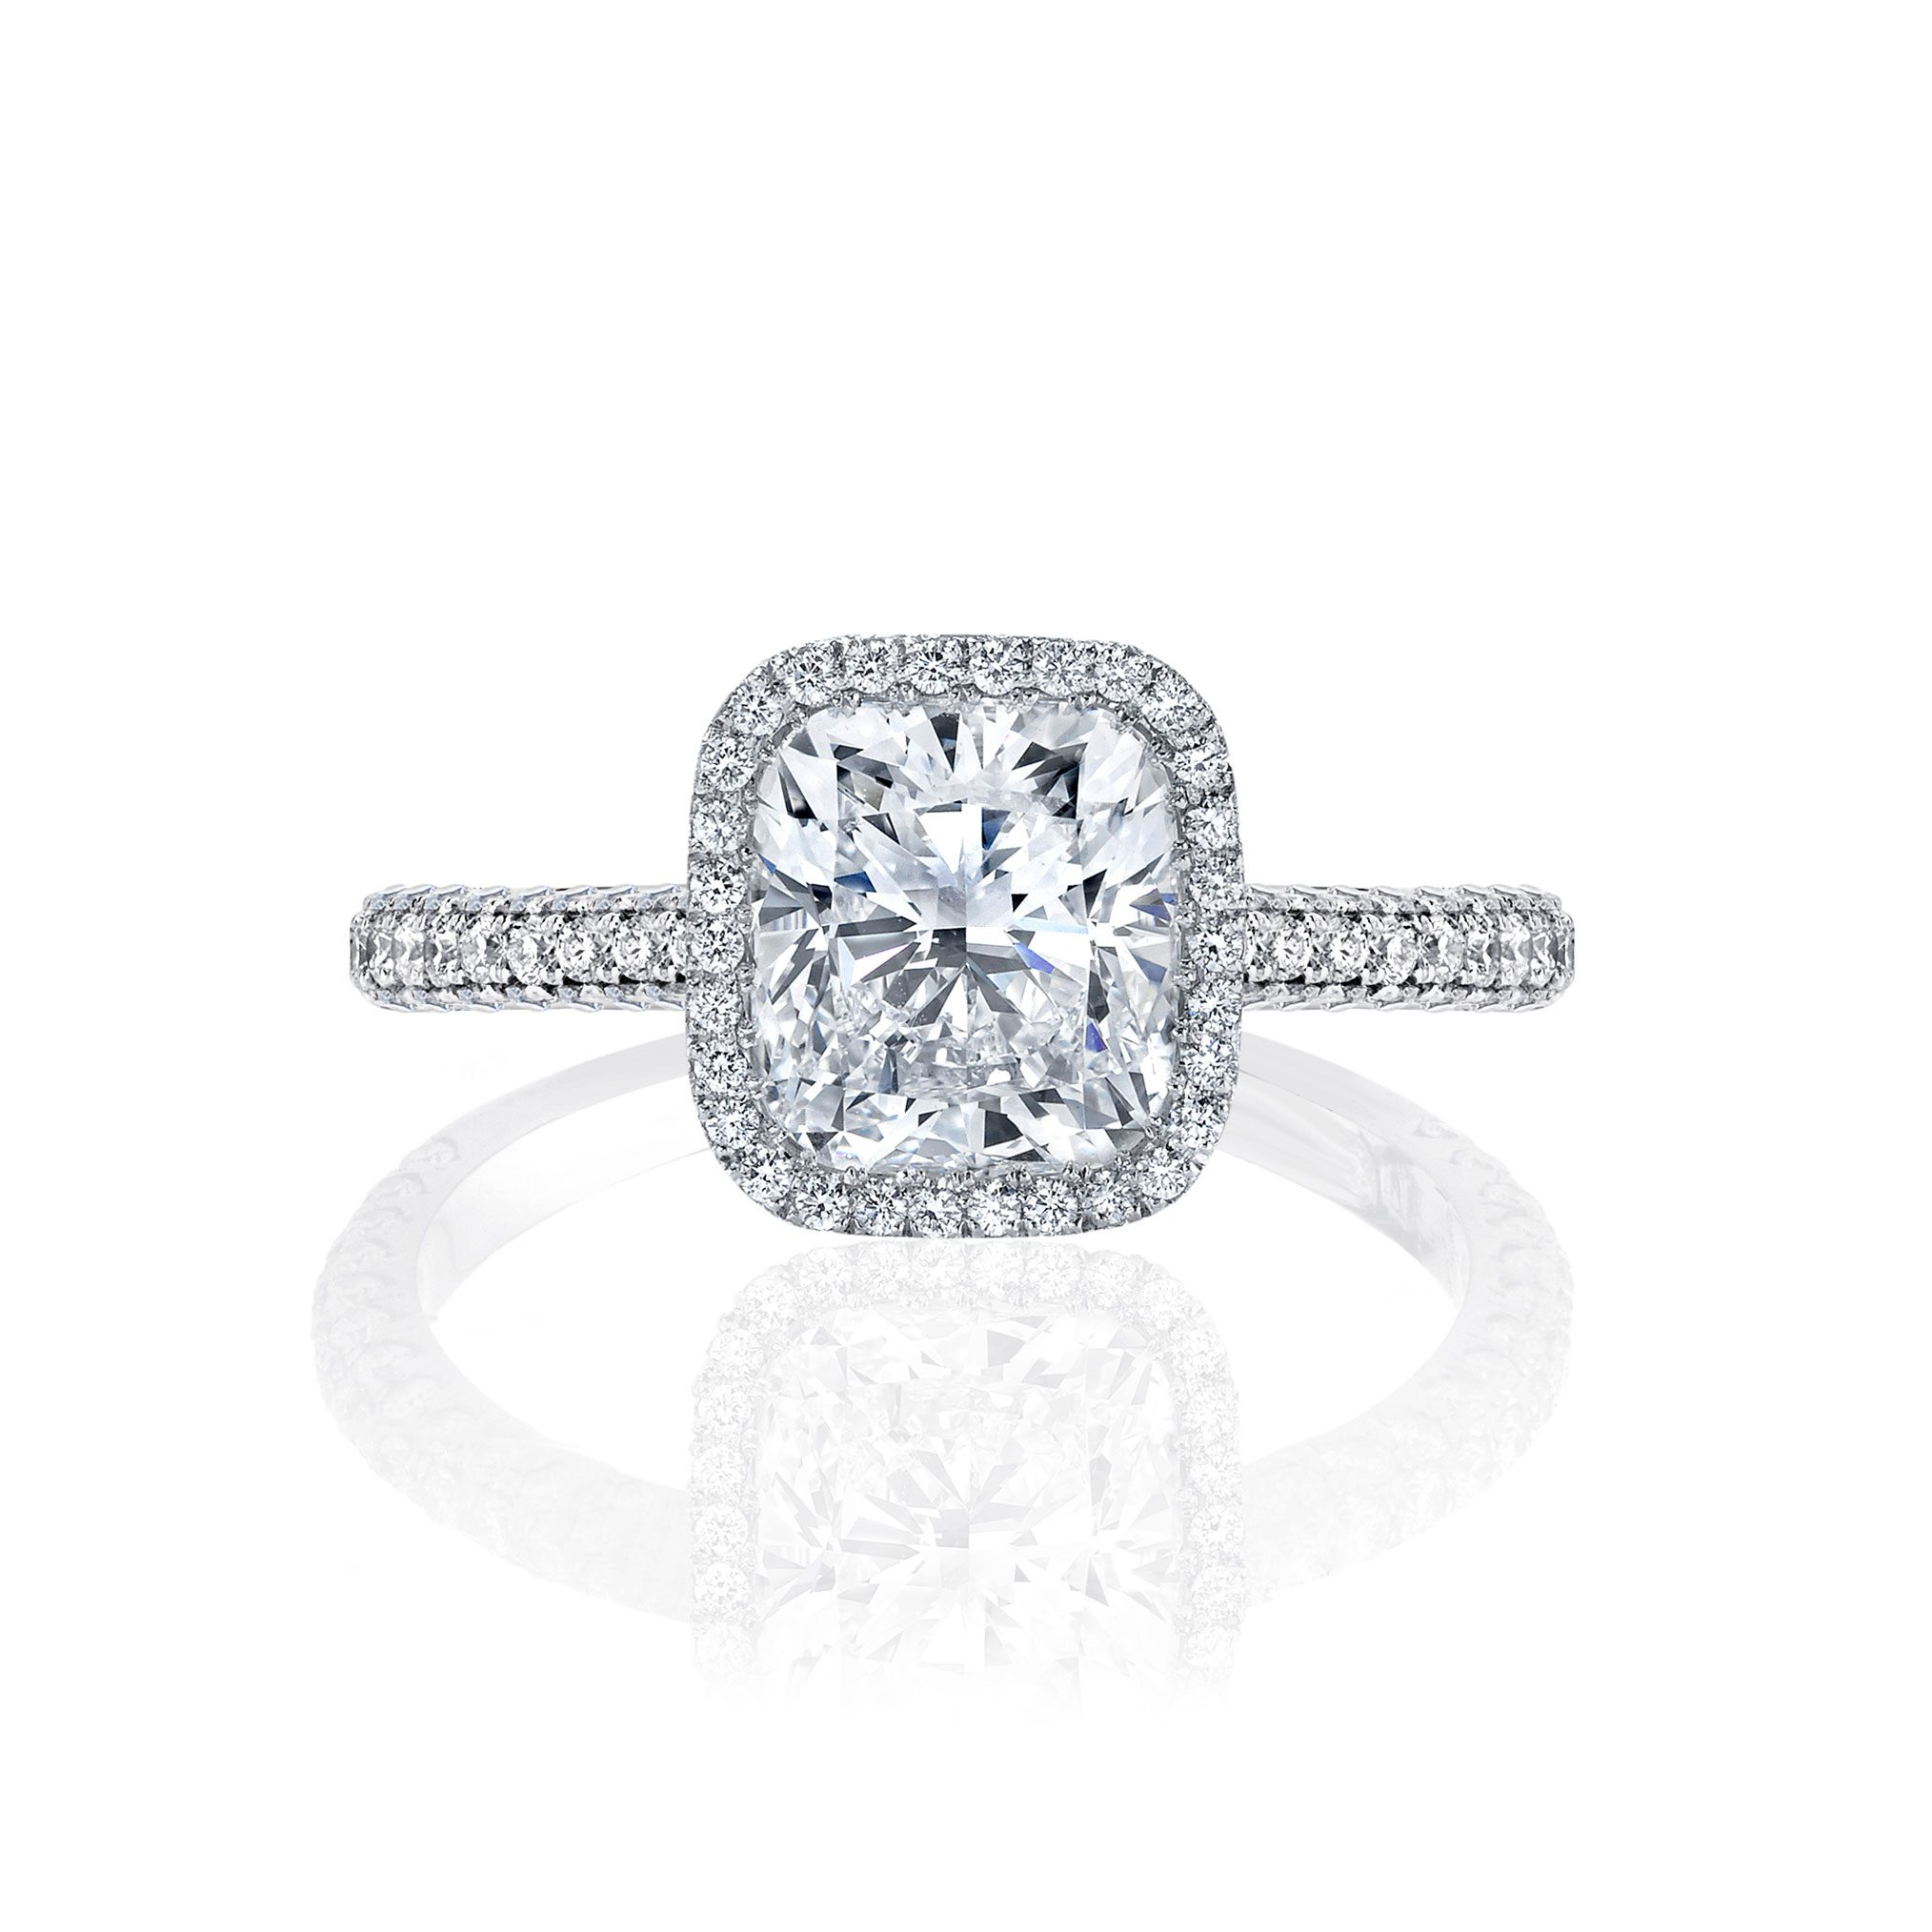 Jacqueline Seamless Halo® Engagement Ring with Lab Grown Cushion Cut Diamond in white gold